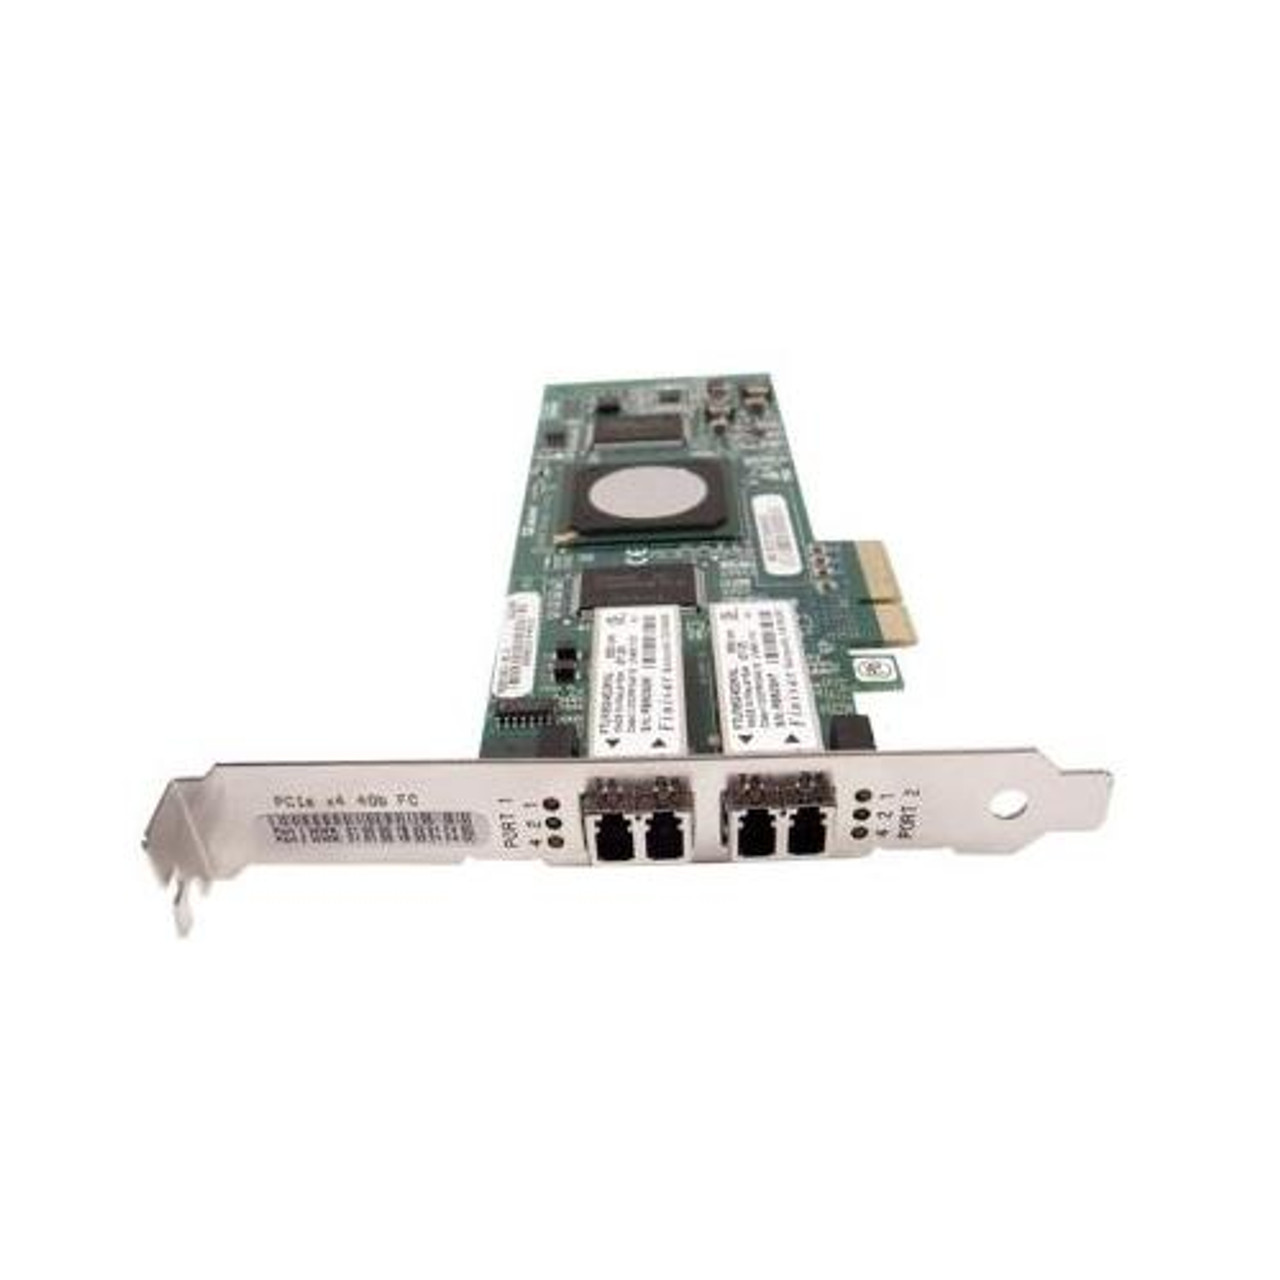 Sanblade Qle2460 Host Bus Adapter Plug-In Card